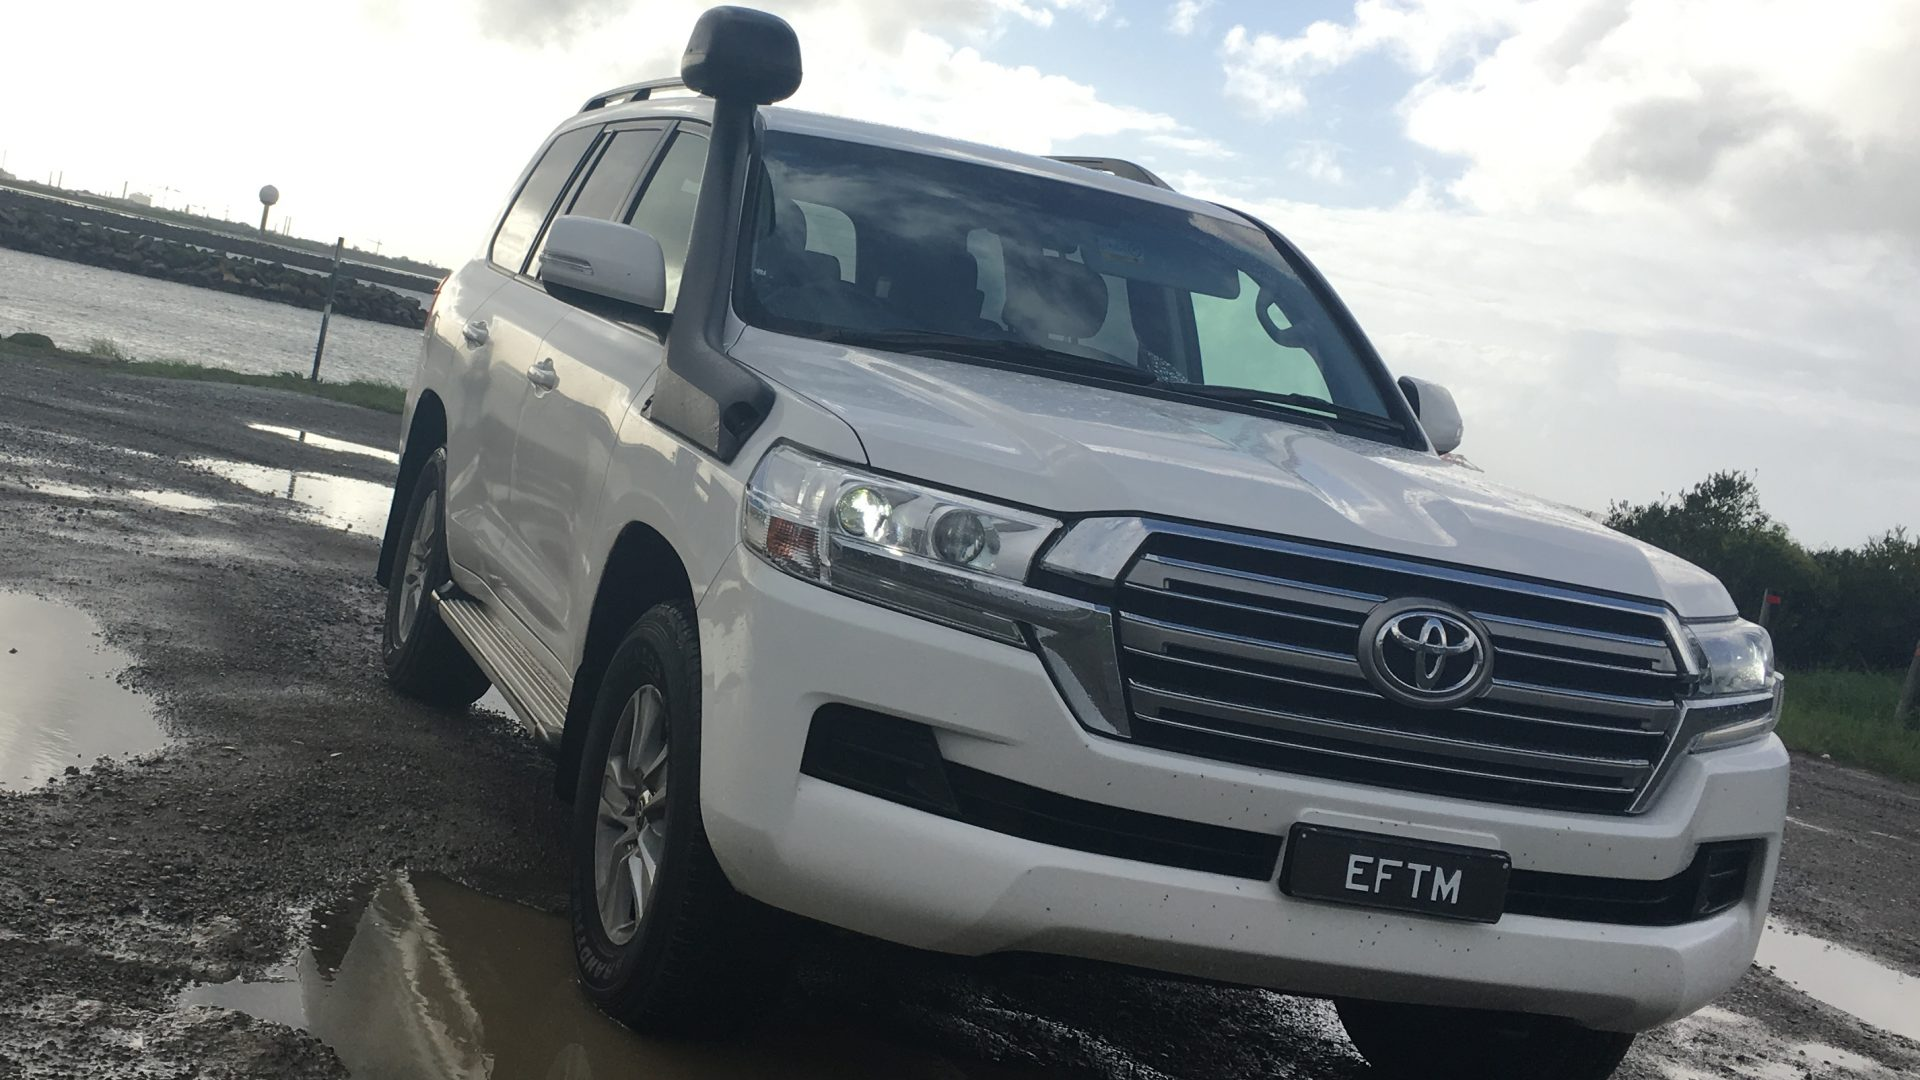 Cool Toyota Landcruiser 200 GXL Review The Most Capable Offroad Vehicle